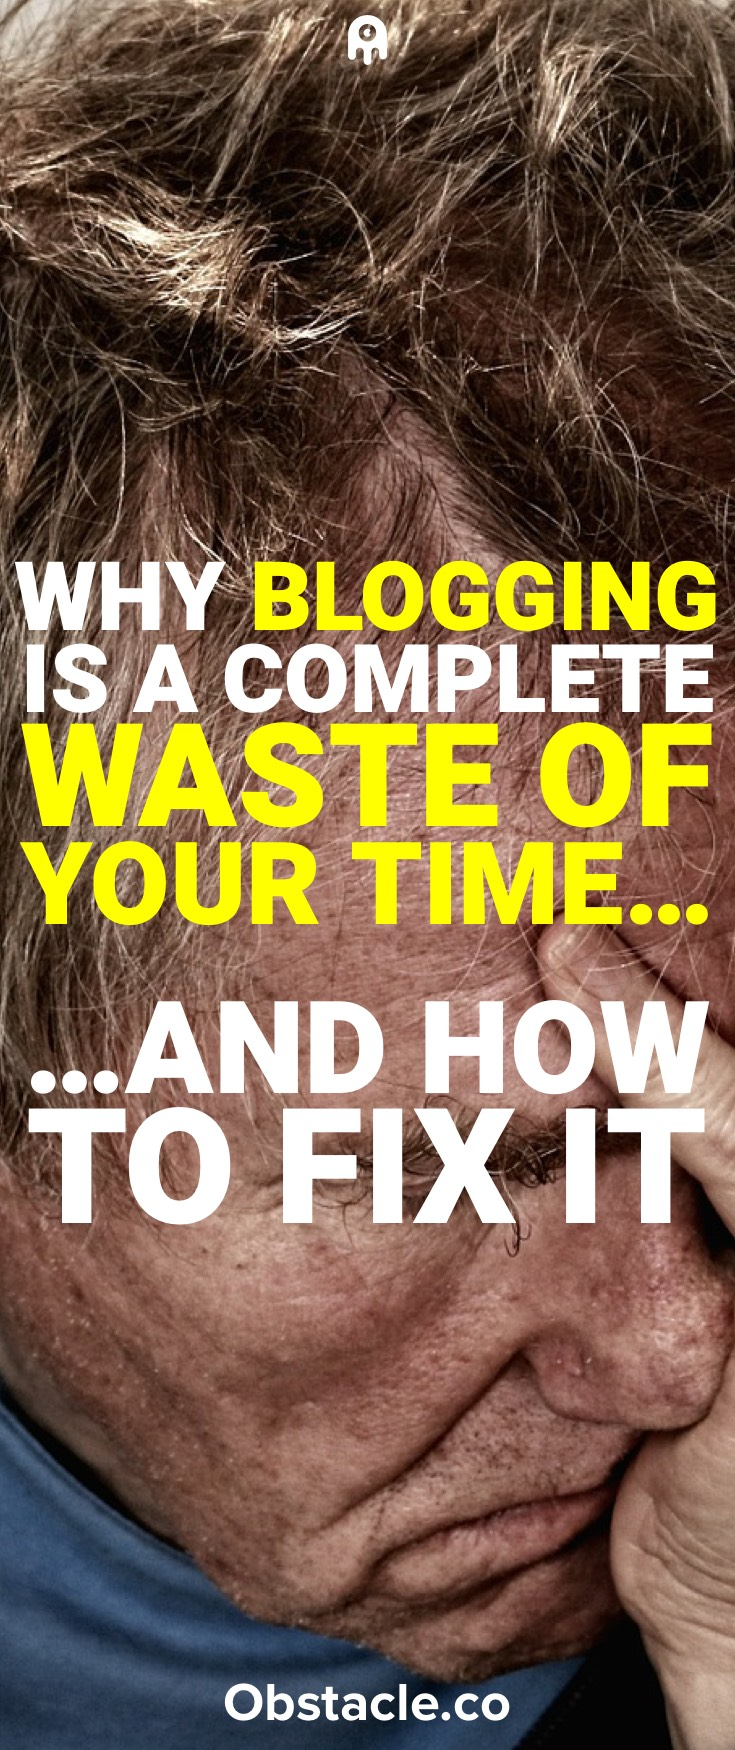 Why Blogging Is a Complete Waste of Your Time